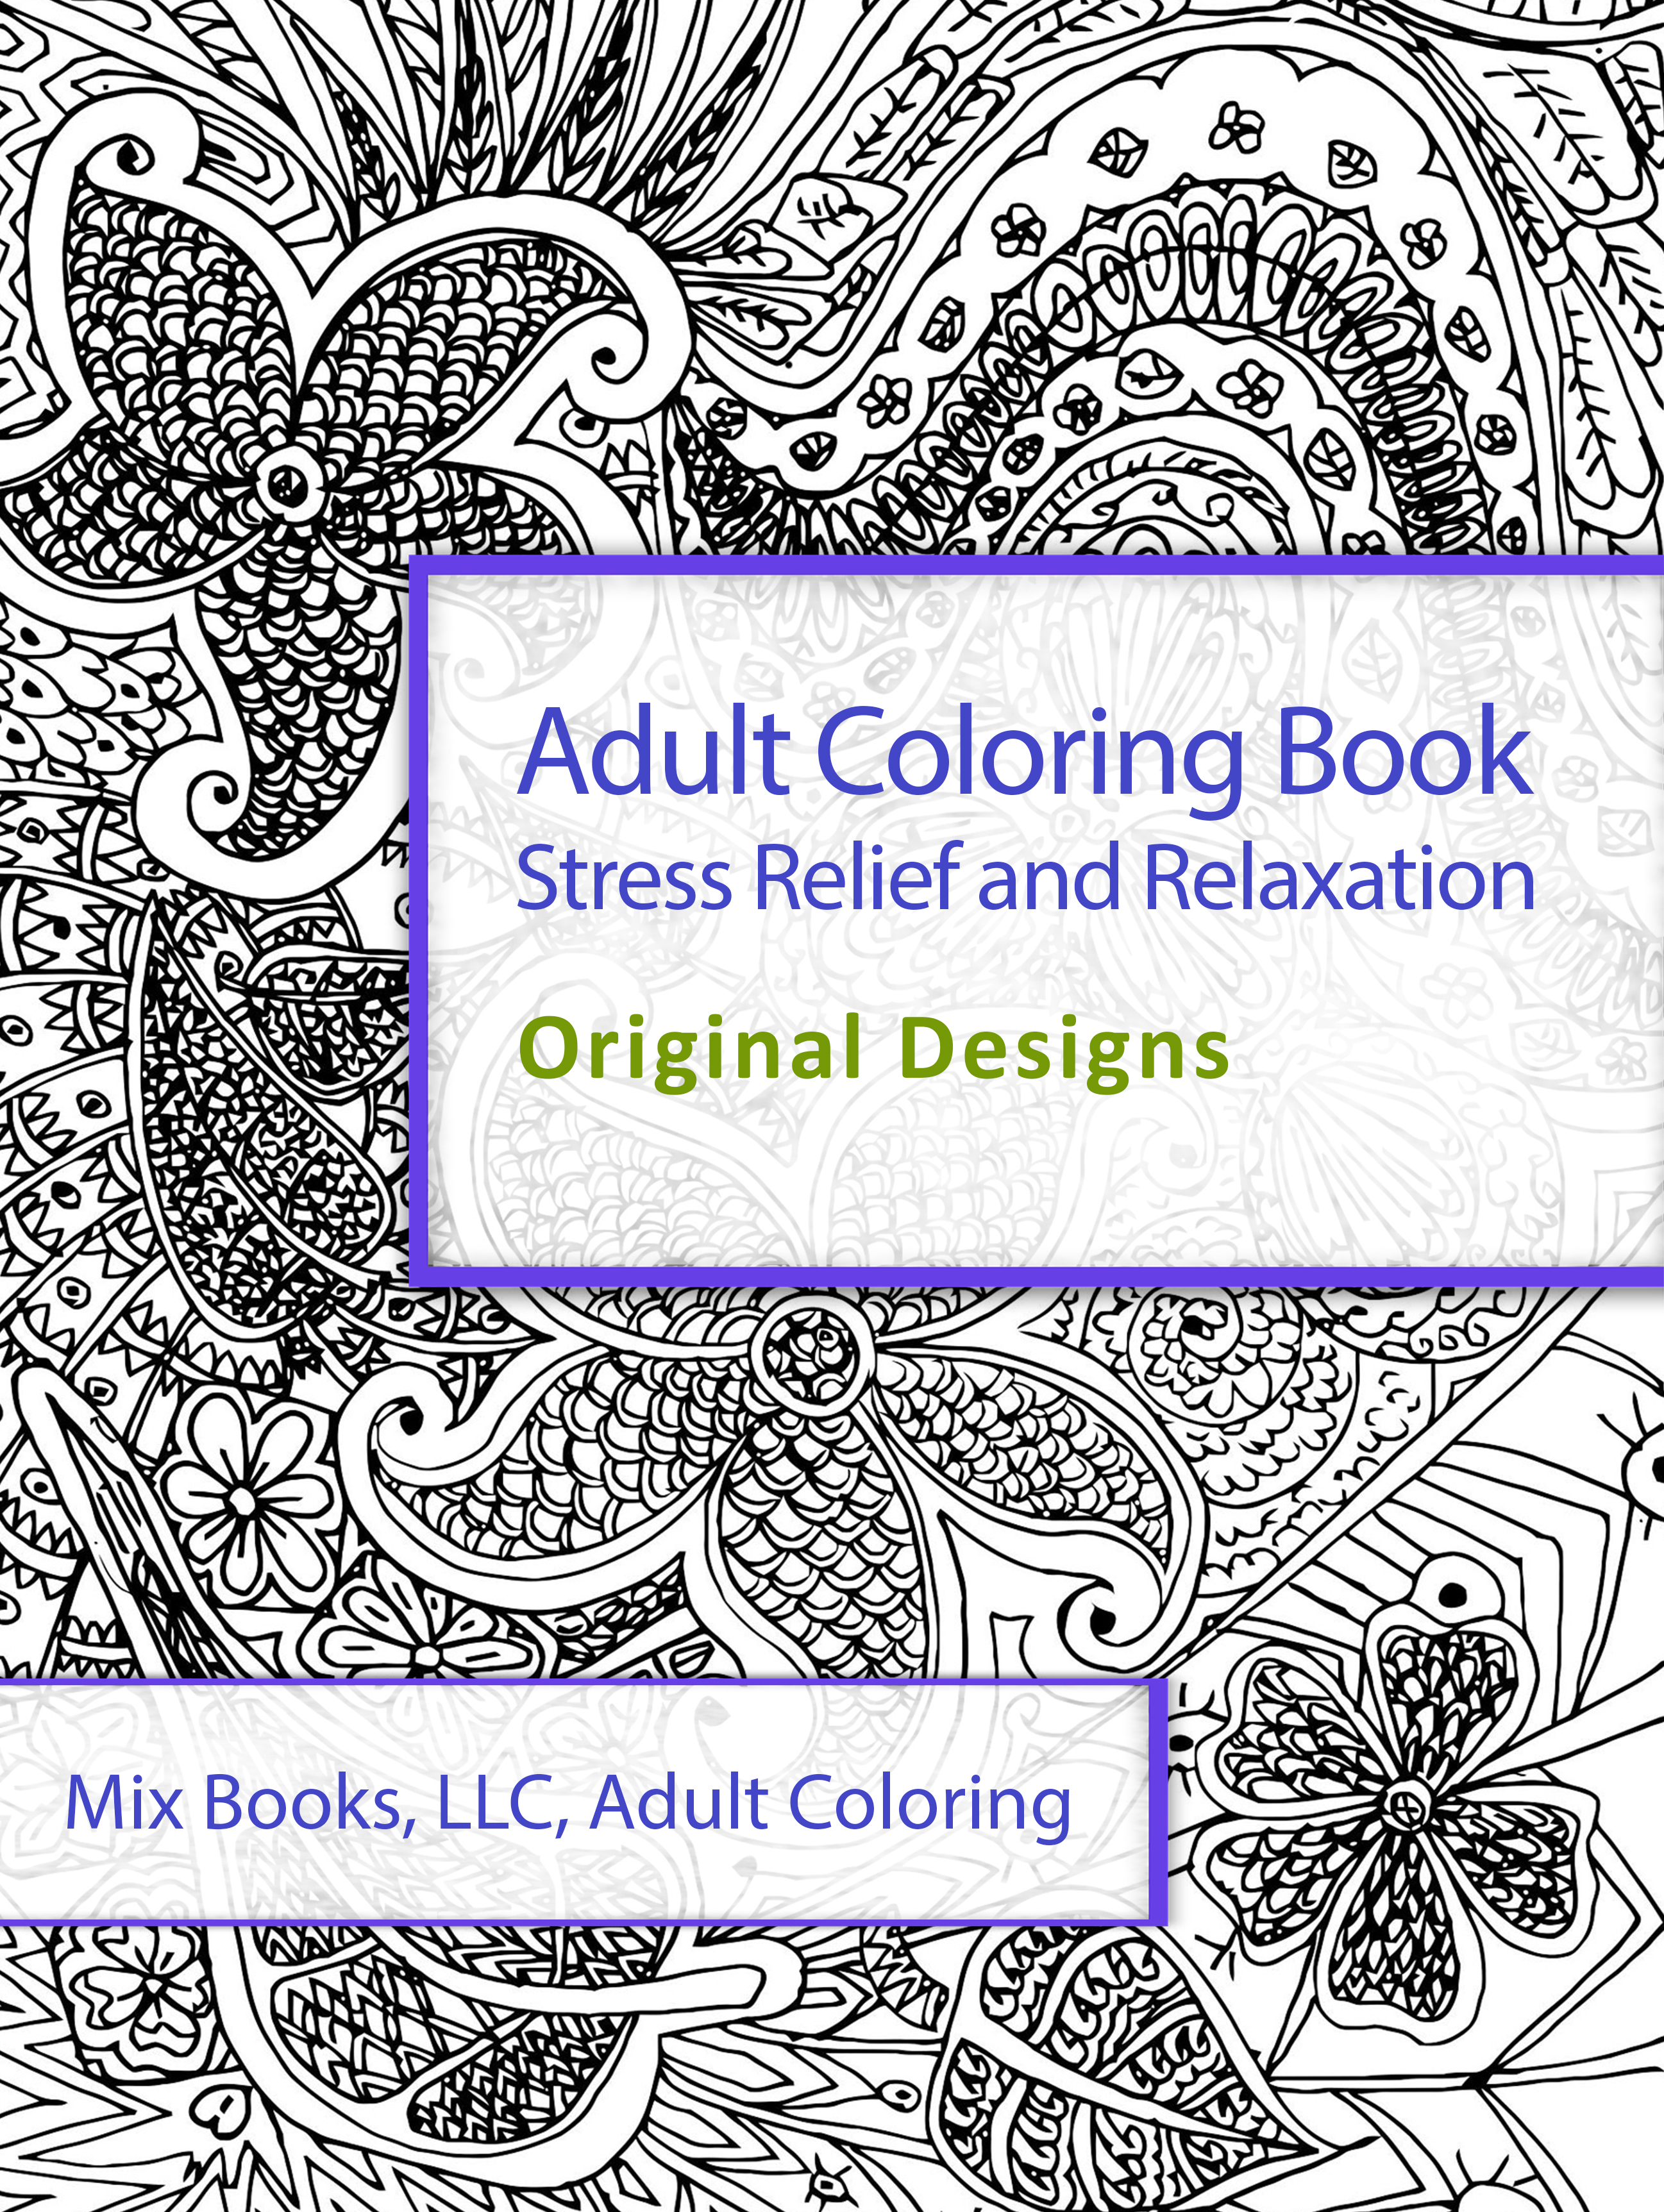 Coloring books for adults stress relief - Coloring Books For Adults Stress Relief 51